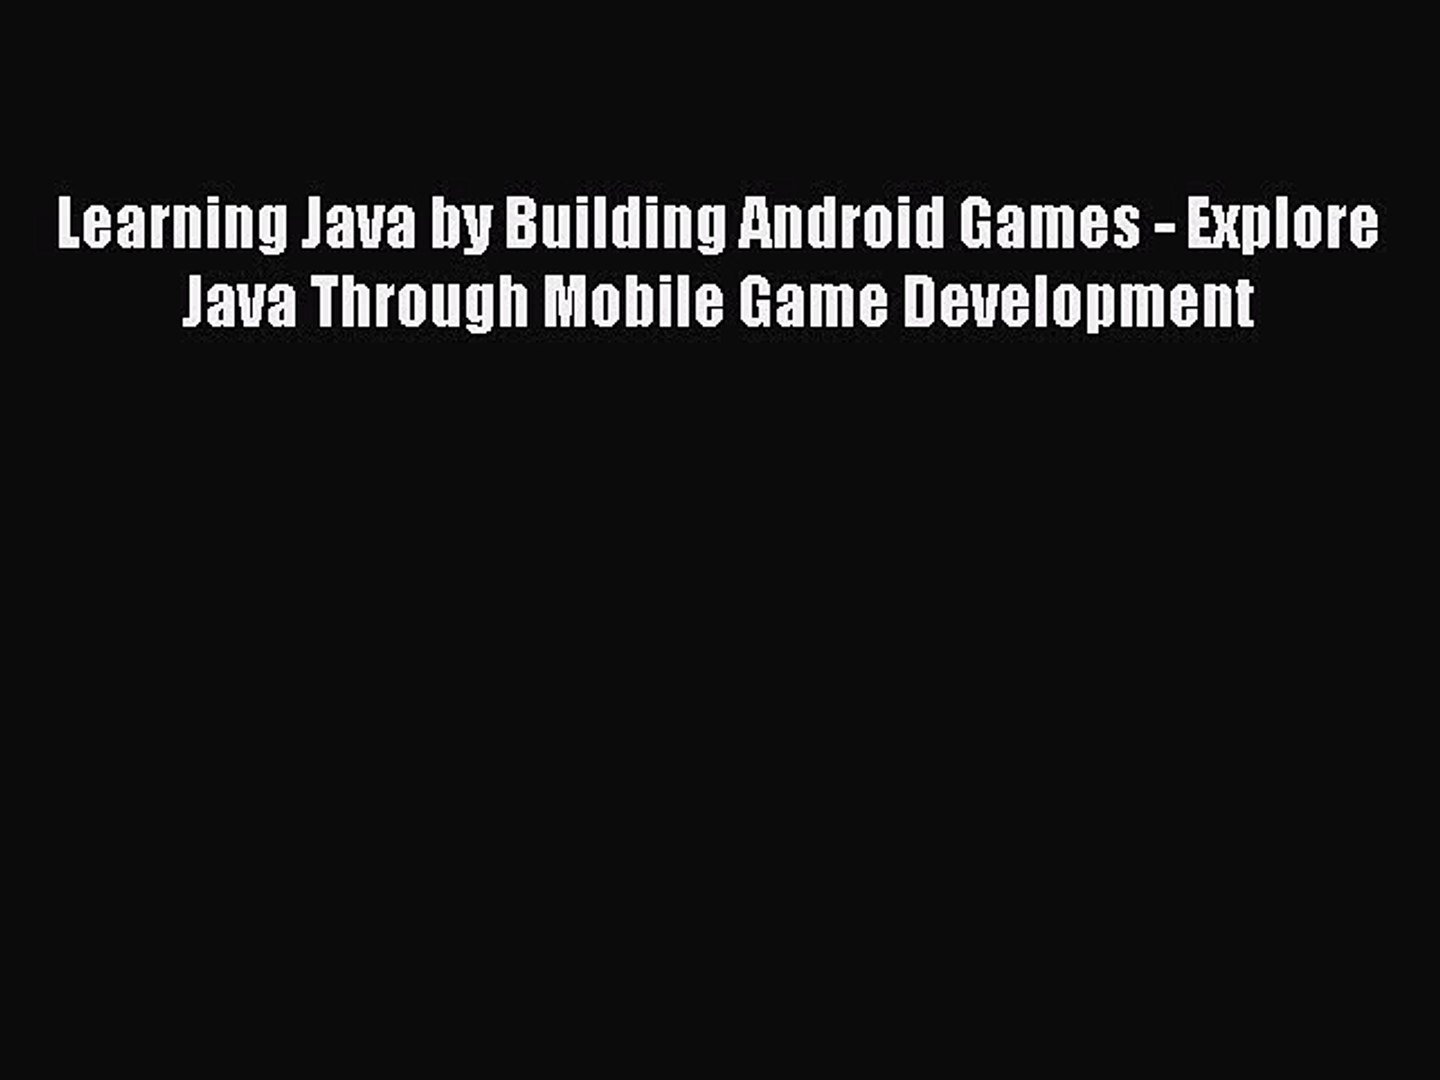 Read Learning Java by Building Android Games - Explore Java Through Mobile Game Development